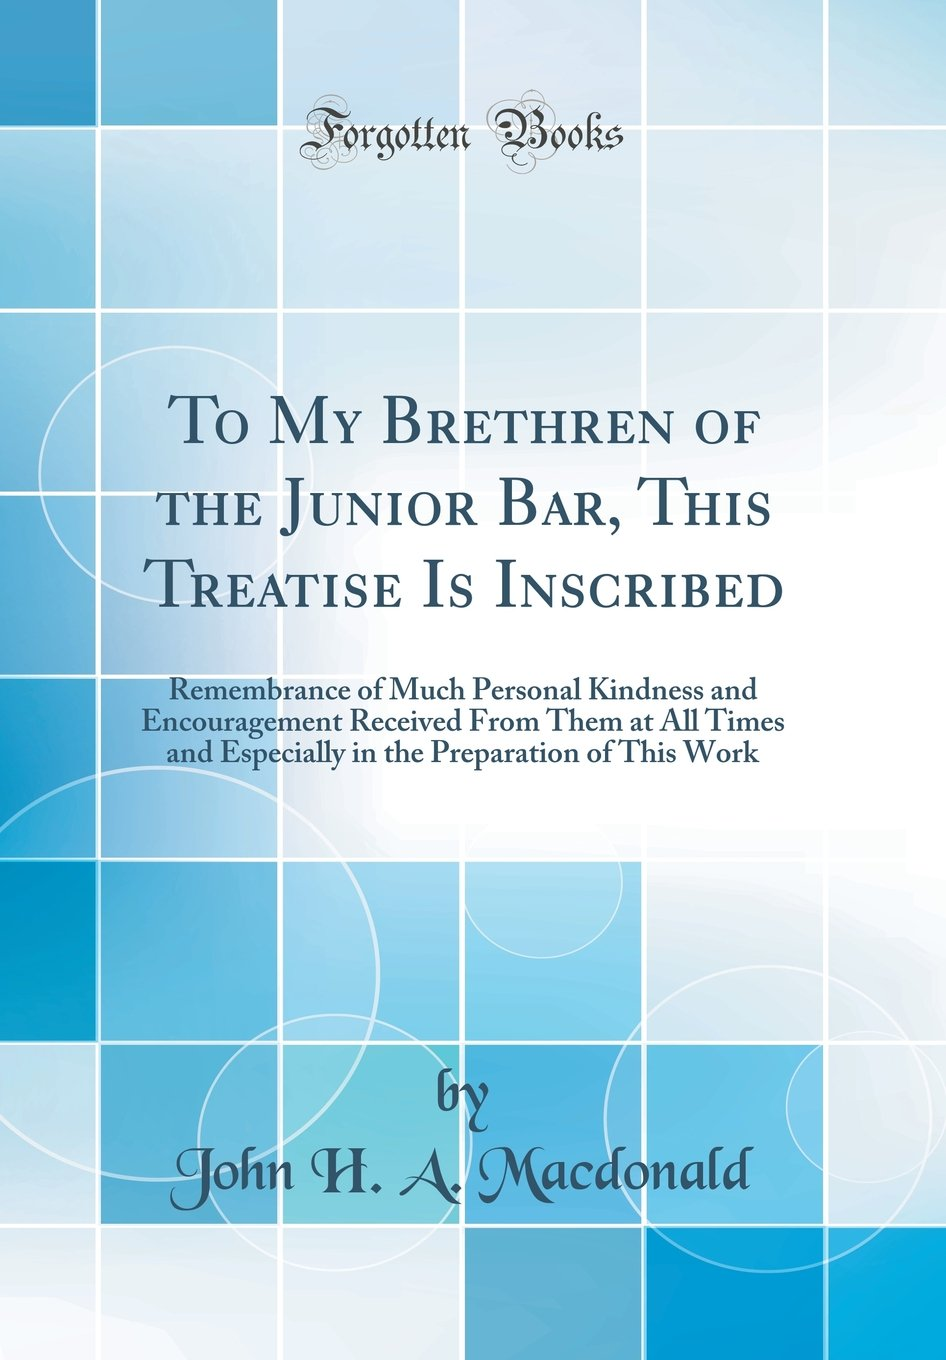 To My Brethren of the Junior Bar, This Treatise Is Inscribed: Remembrance of Much Personal Kindness and Encouragement Received From Them at All Times ... Preparation of This Work (Classic Reprint) pdf